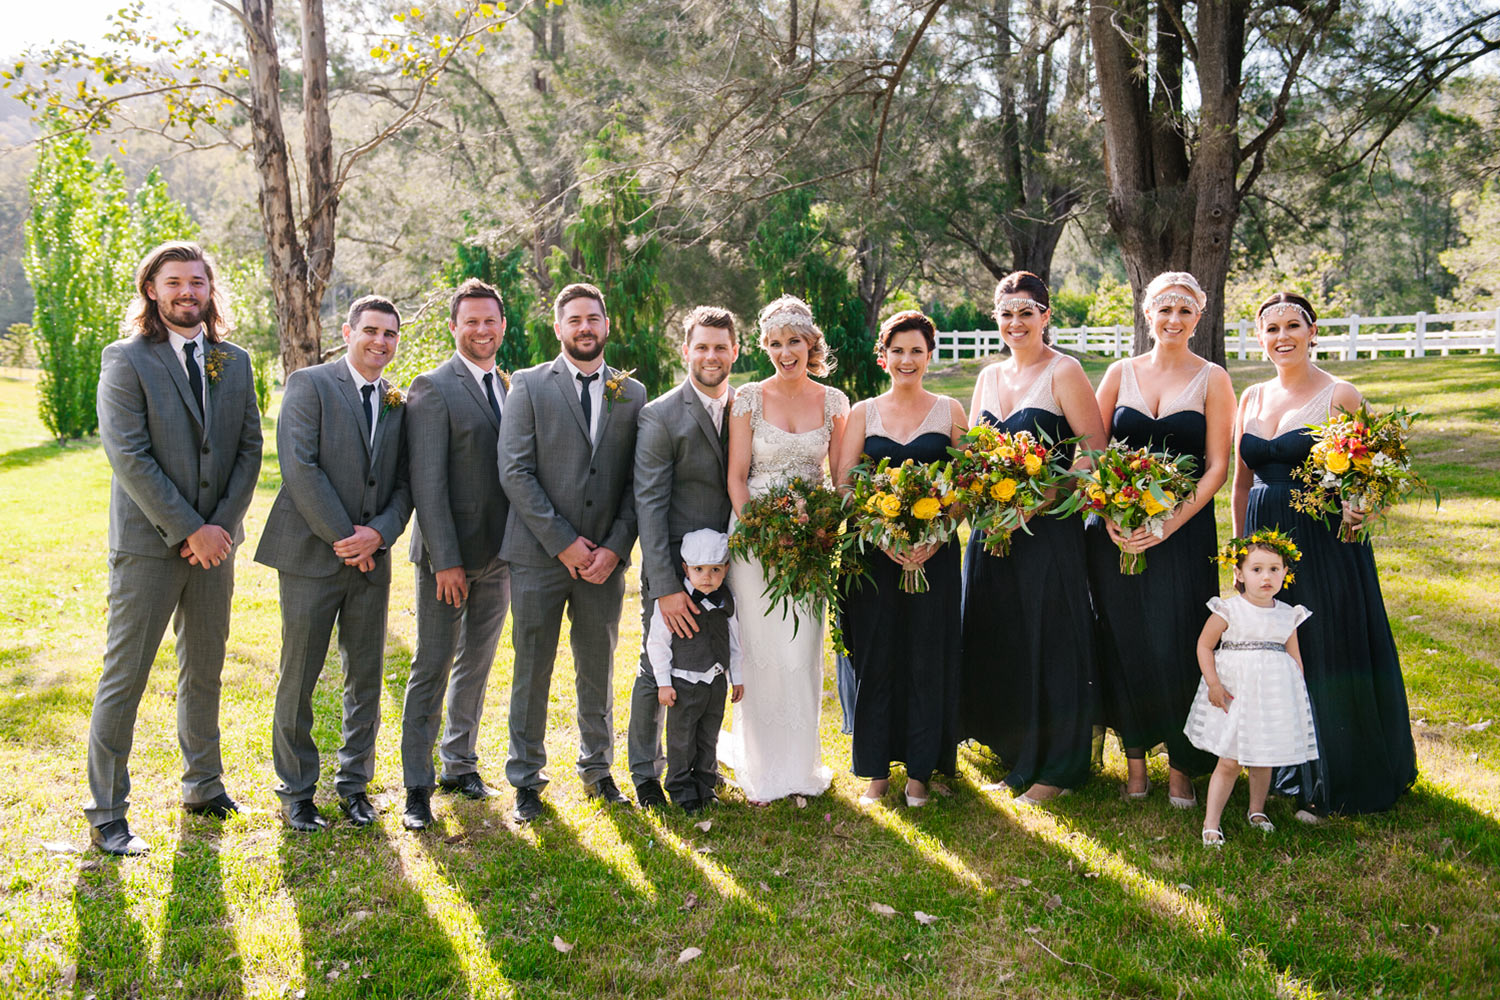 Wedding-Photographer-Hunter-Valley-KM46.jpg